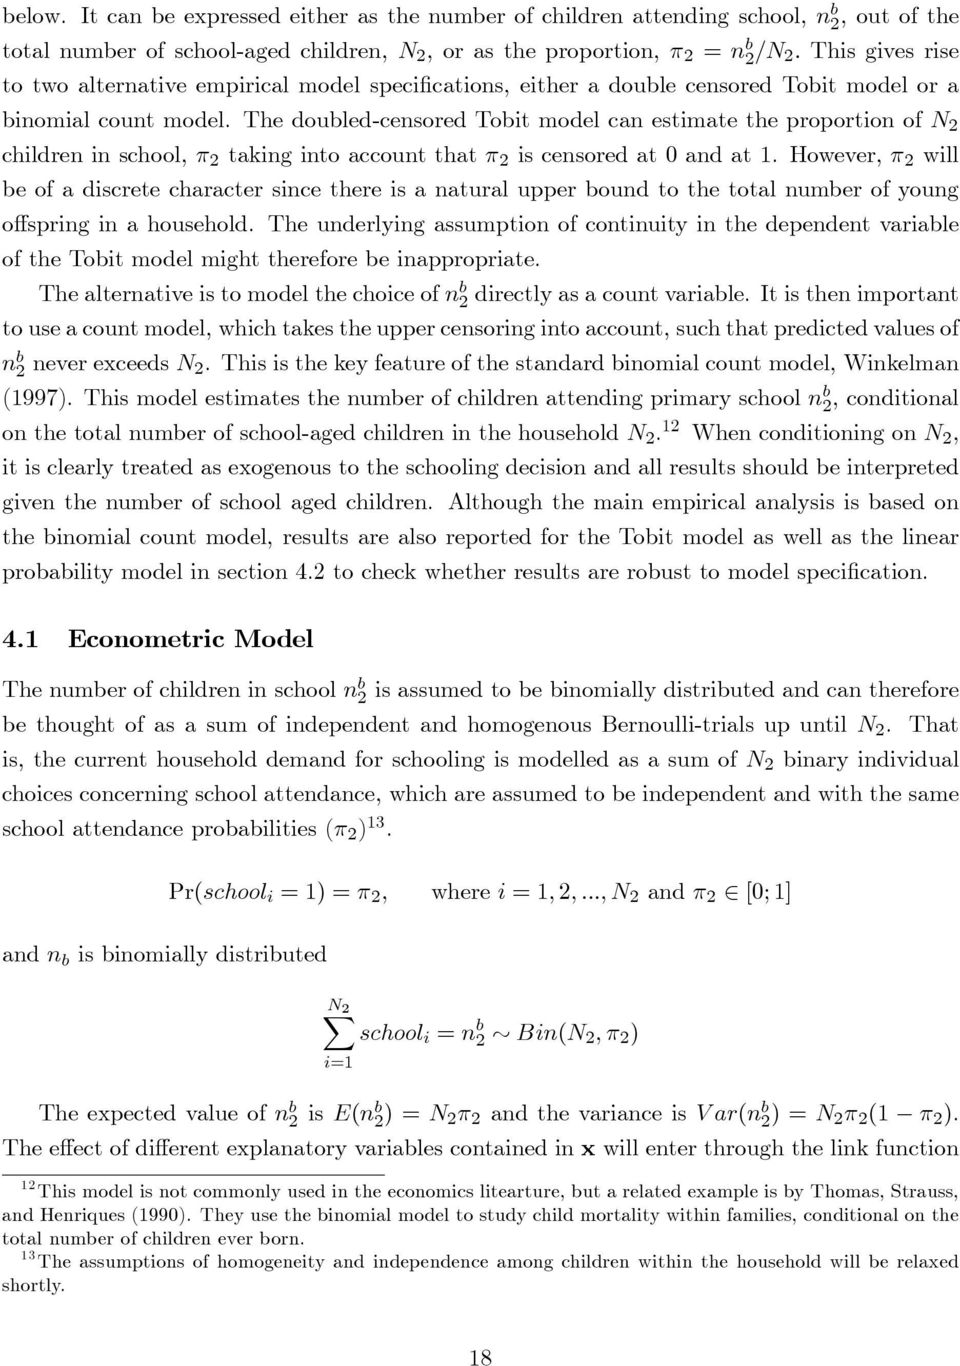 alternative empirical model speci cations, either a double censored Tobit model or a binomial count model.